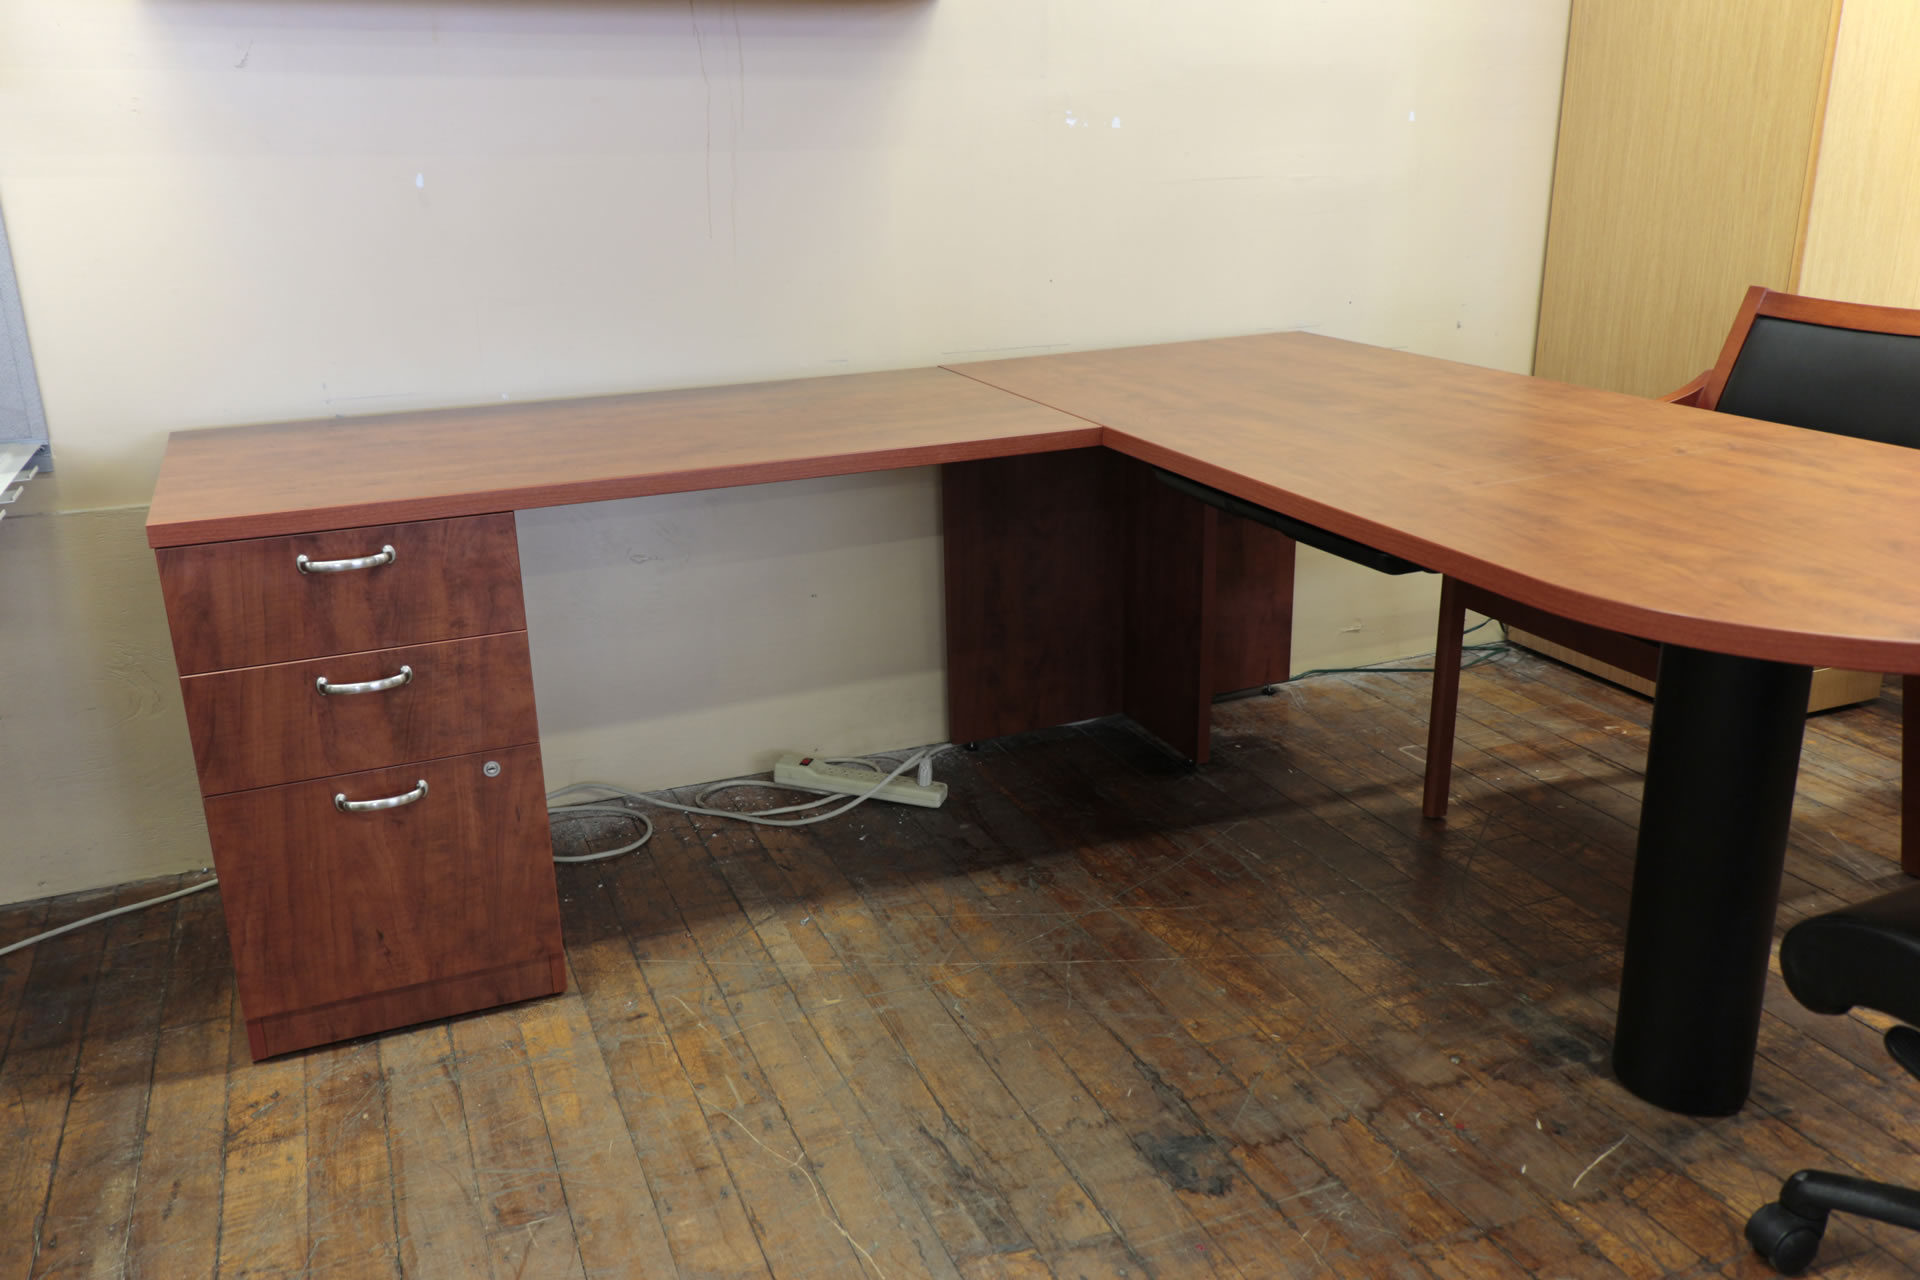 peartreeofficefurniture_peartreeofficefurniture_mg_4703.jpg